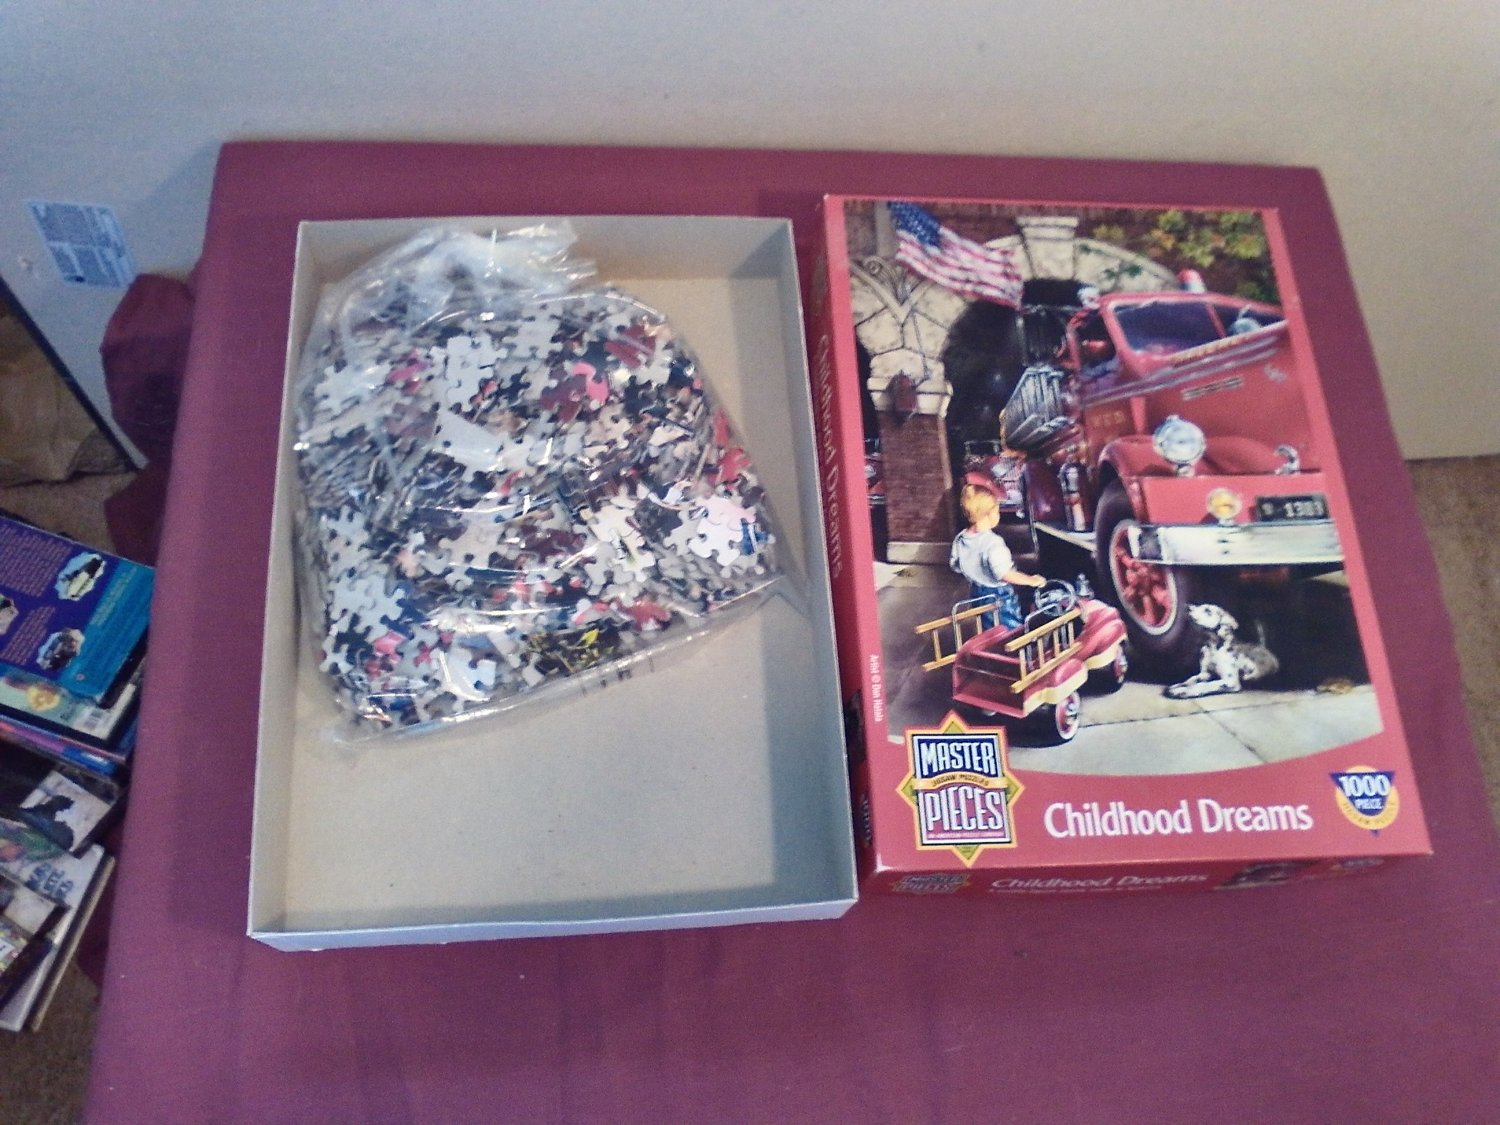 Jigsaw Puzzle Childhood Dreams Fire Truck Boy Dalmatian Dog 1000 Piece (mw)